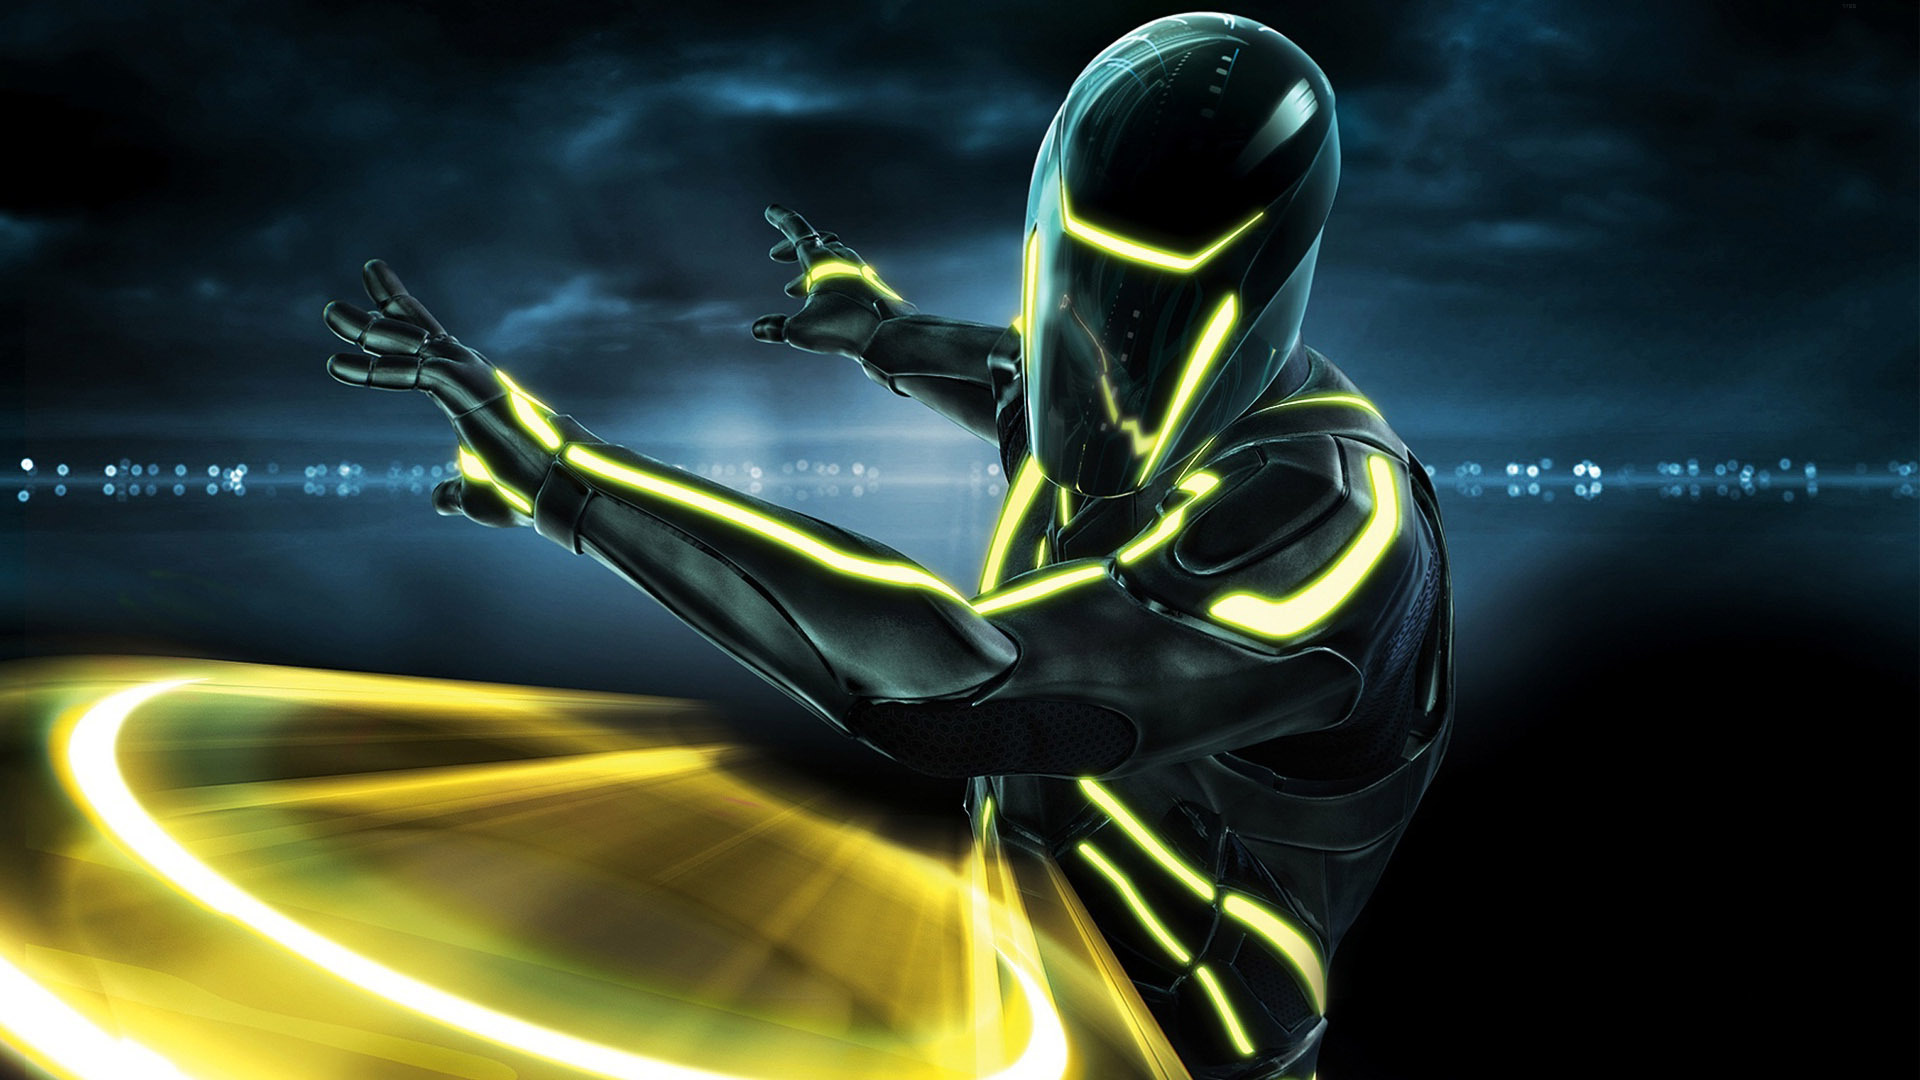 Tron Wallpapers HD  Wallpaper  1920x1080